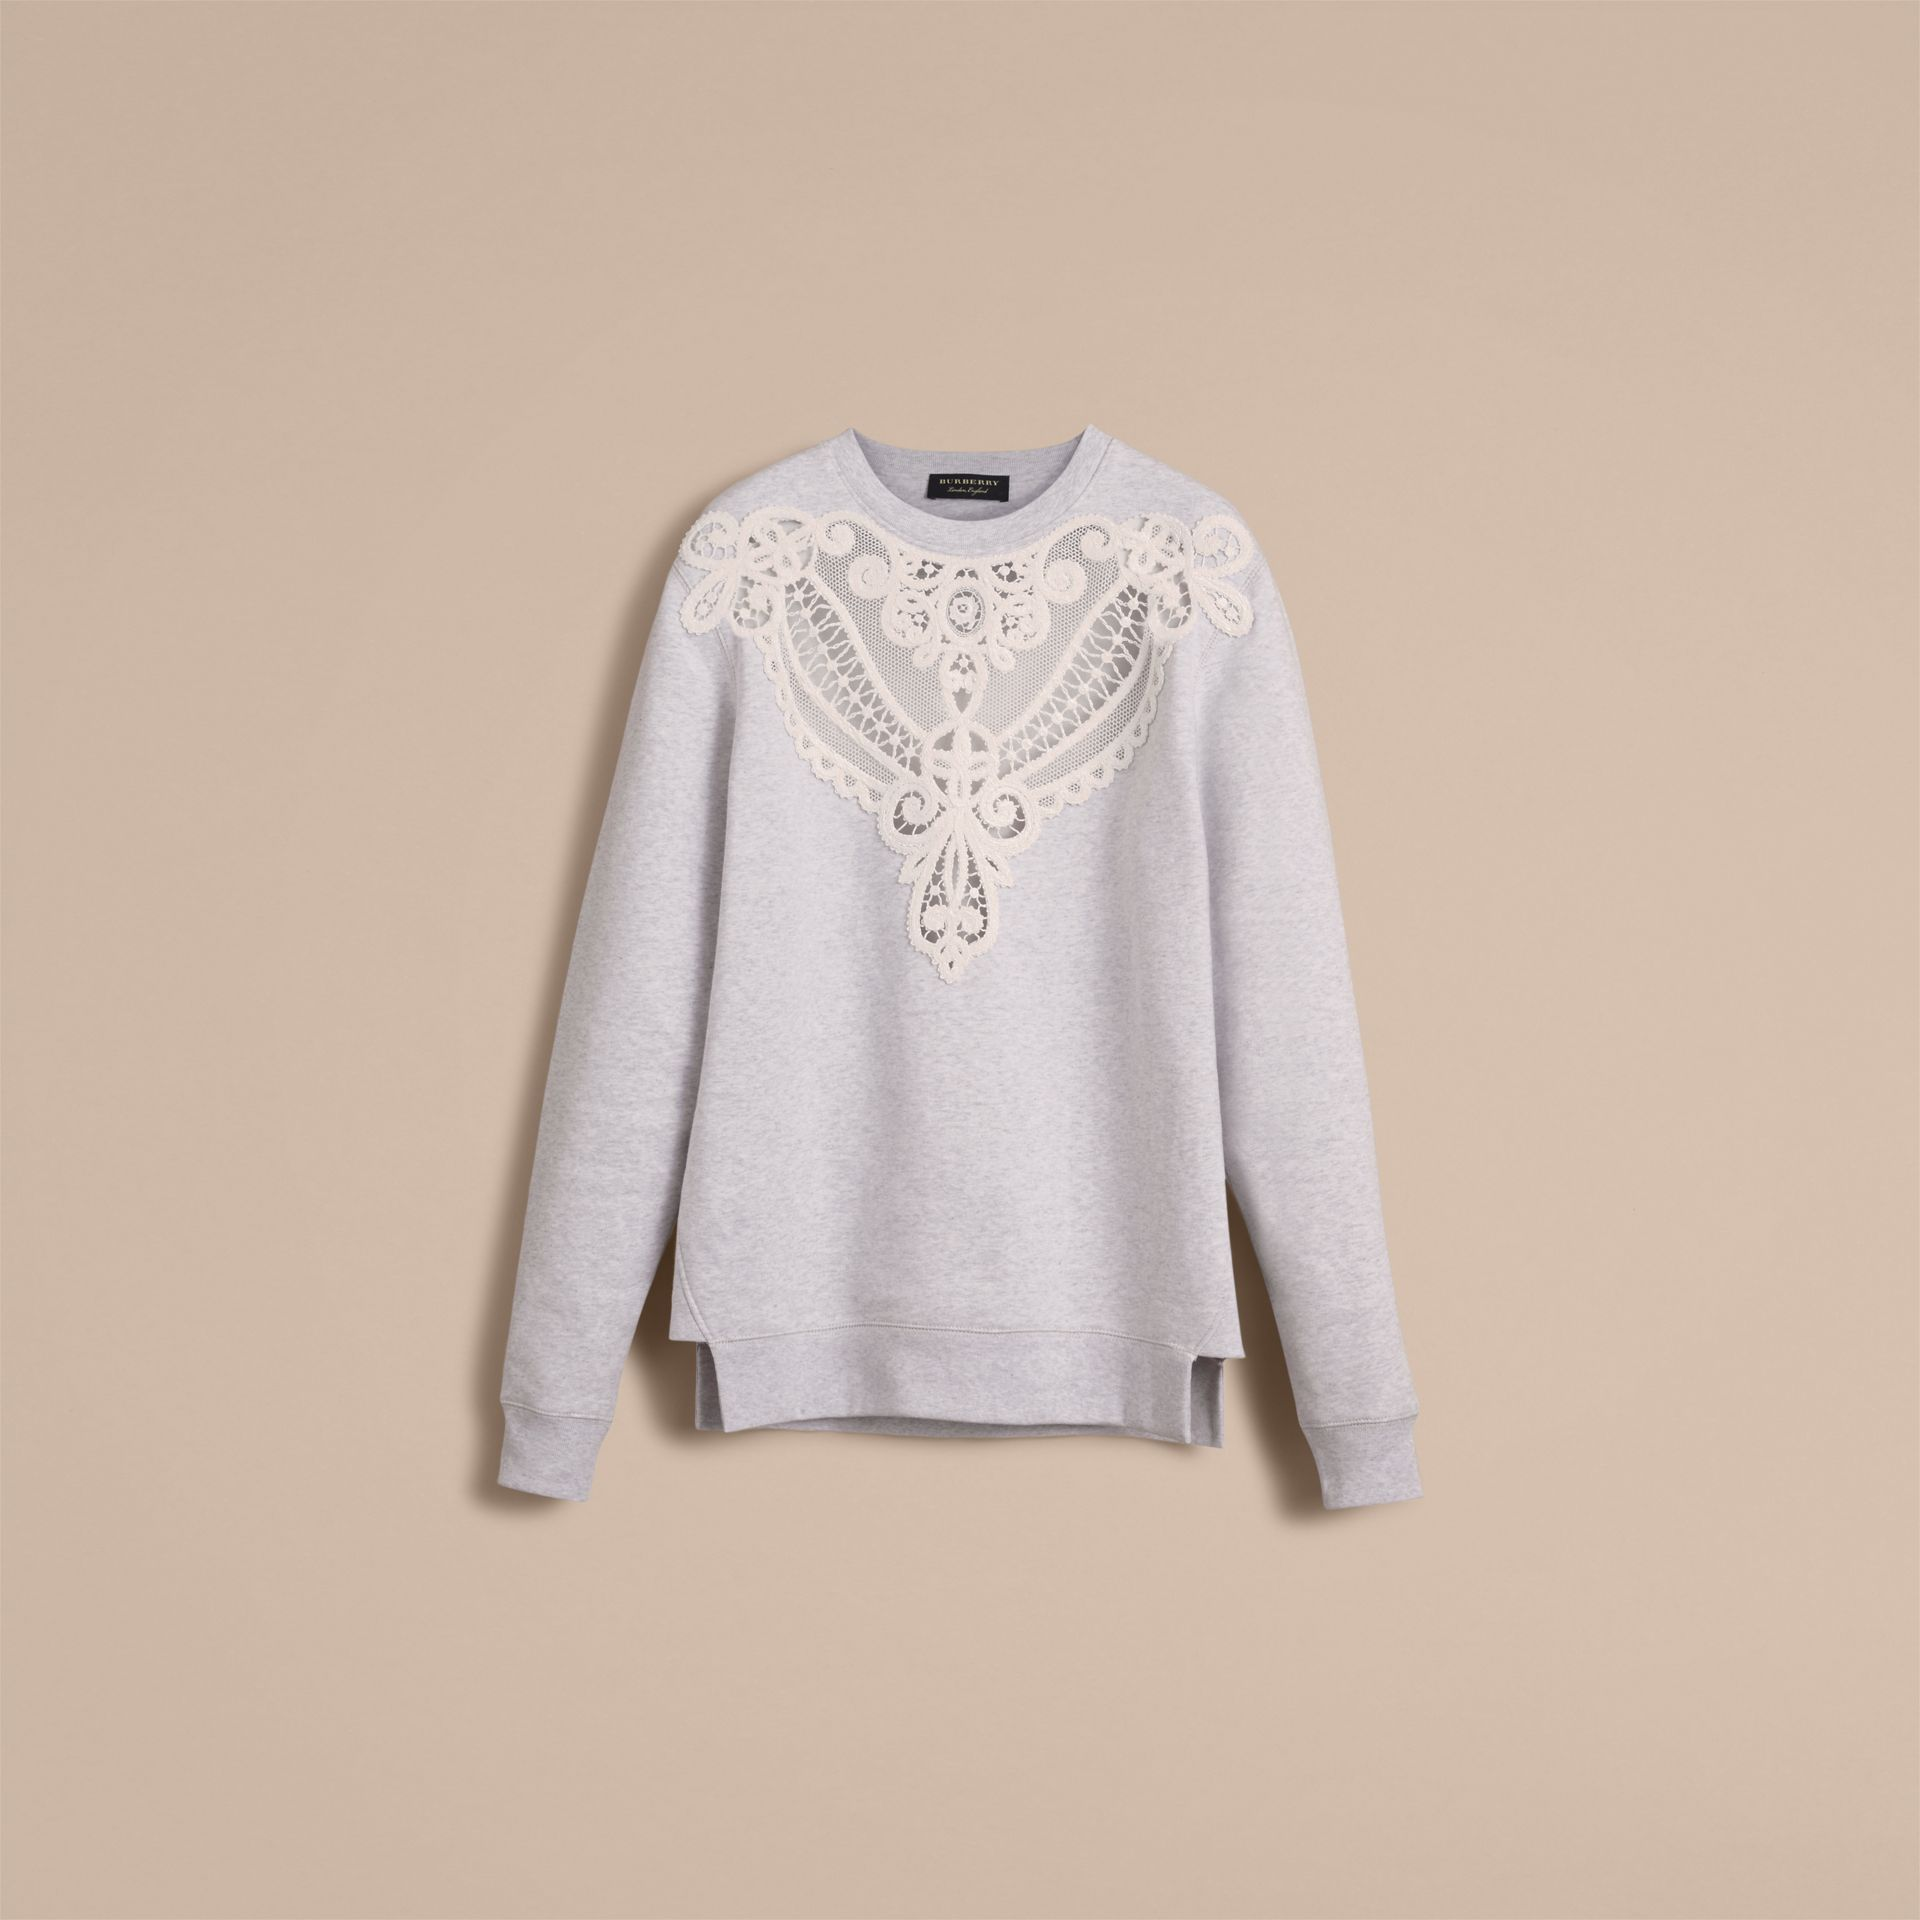 Unisex Lace Cutwork Sweatshirt in Light Grey Melange - Men | Burberry - gallery image 4